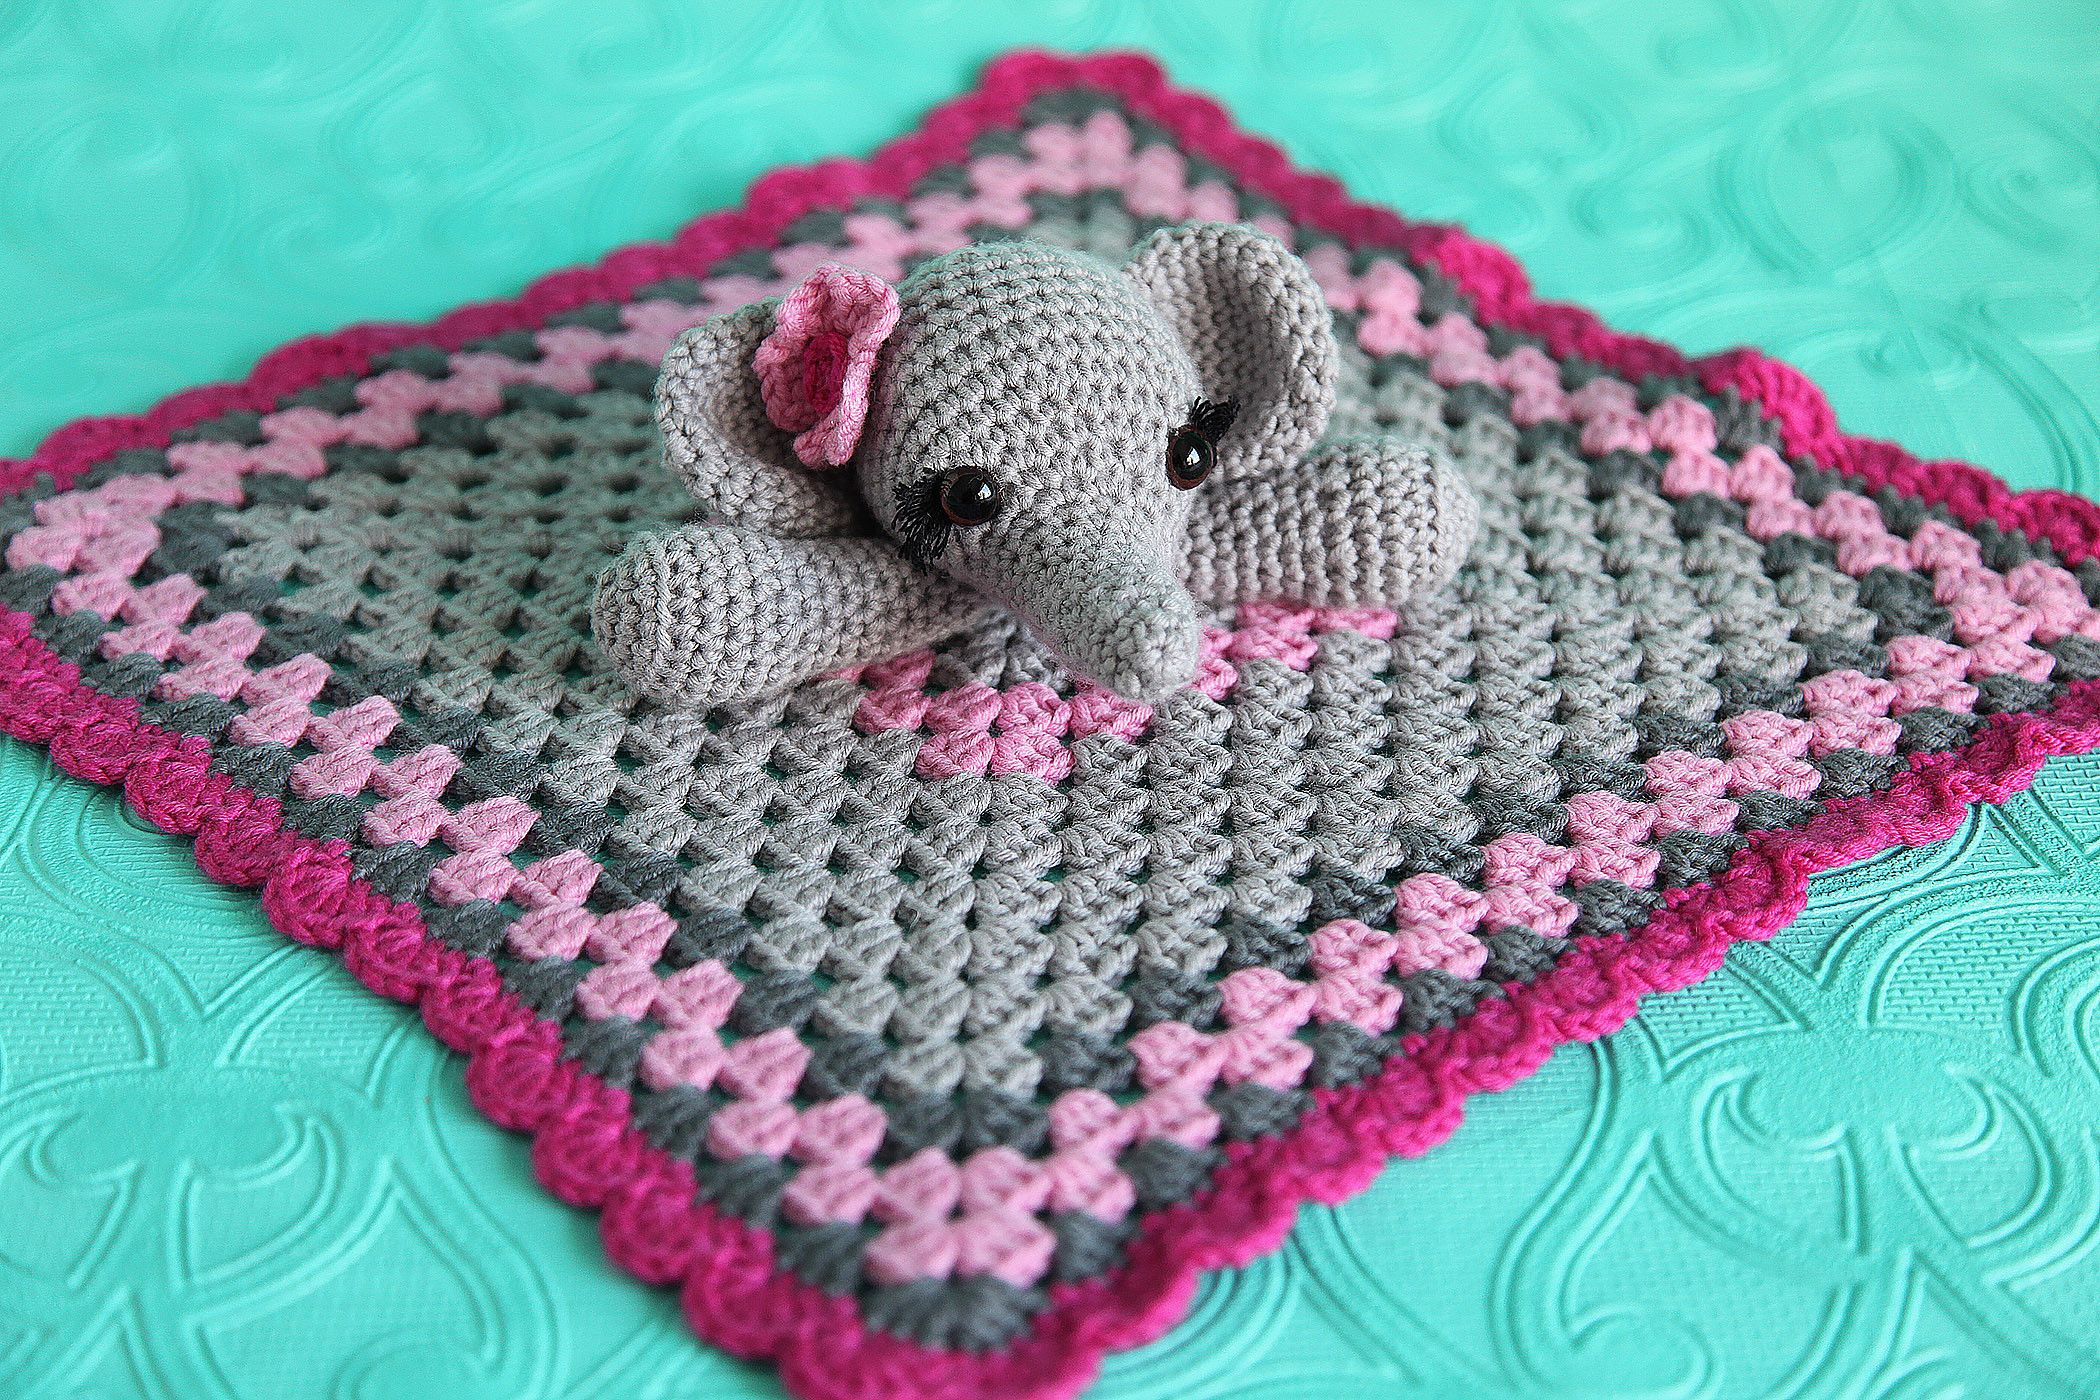 Crochet Elephant Blanket Unique Elephant Lovie Security Blanket toy Of Awesome 44 Ideas Crochet Elephant Blanket